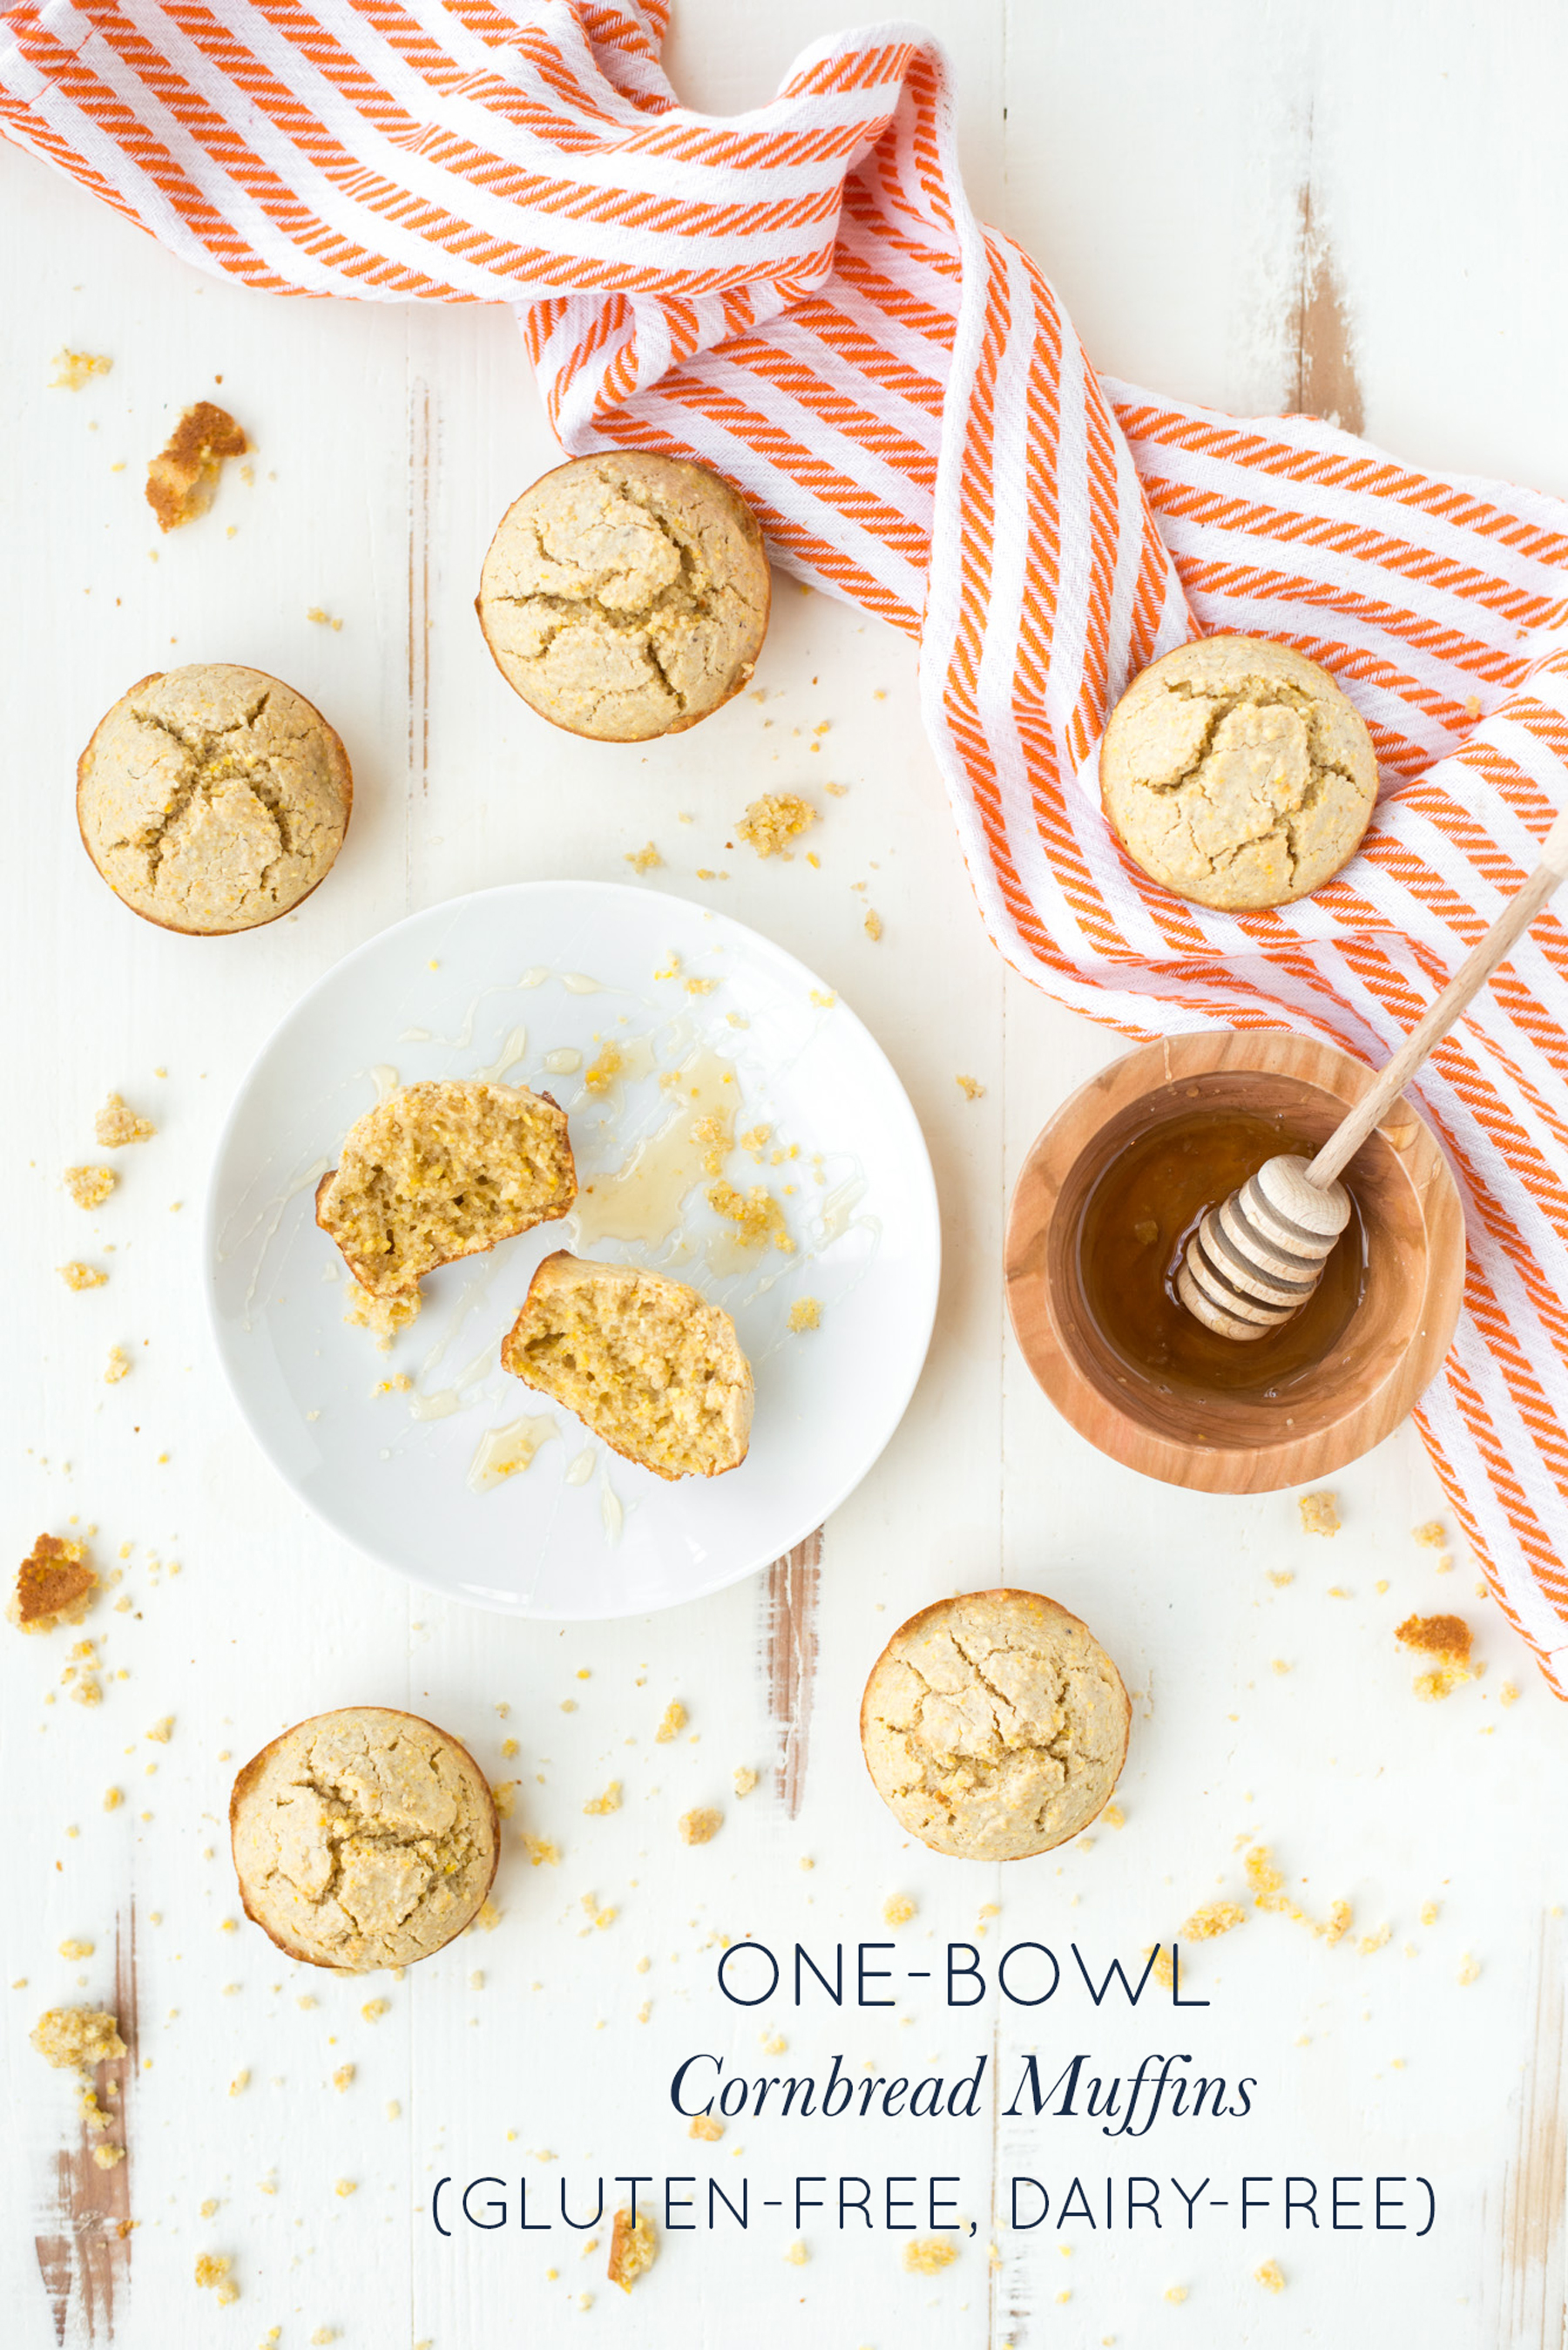 Fresh out of the oven, One-Bowl Cornbread Muffins (Gluten-Free, Dairy-Free) are tender, slightly sweet, and perfect as a side or on their own.